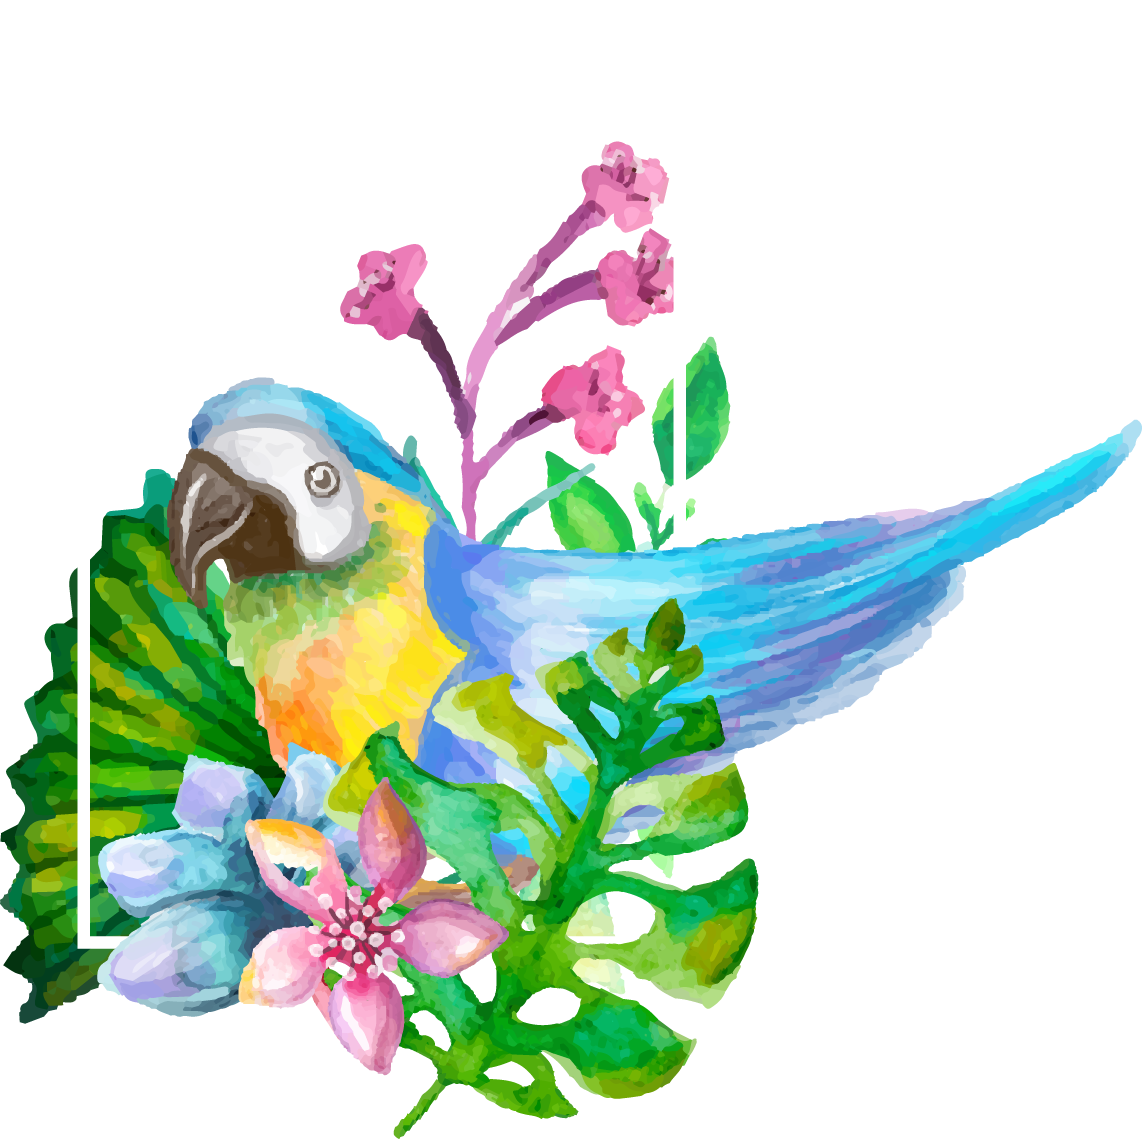 Drawing realism flower. Parrot watercolor painting realistic